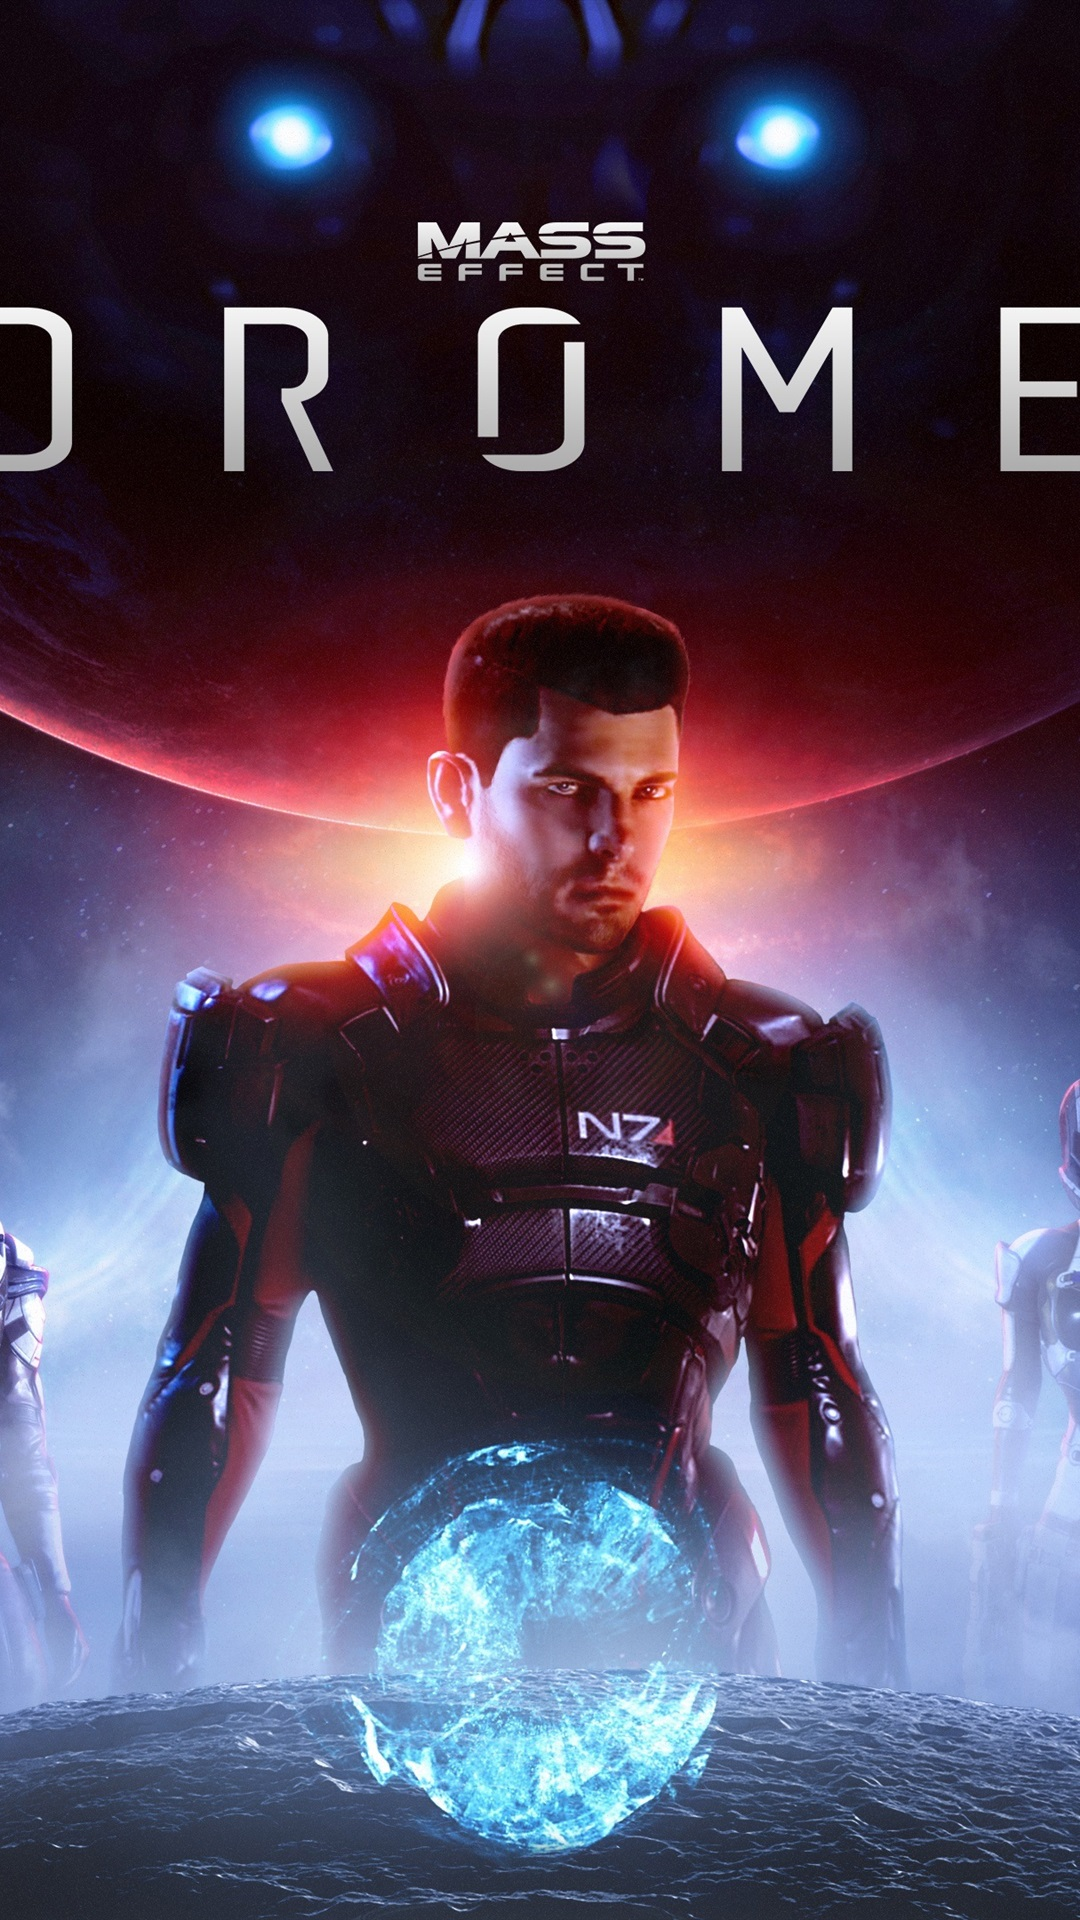 Mass Effect Andromeda Action Role Playing Game 1080x1920